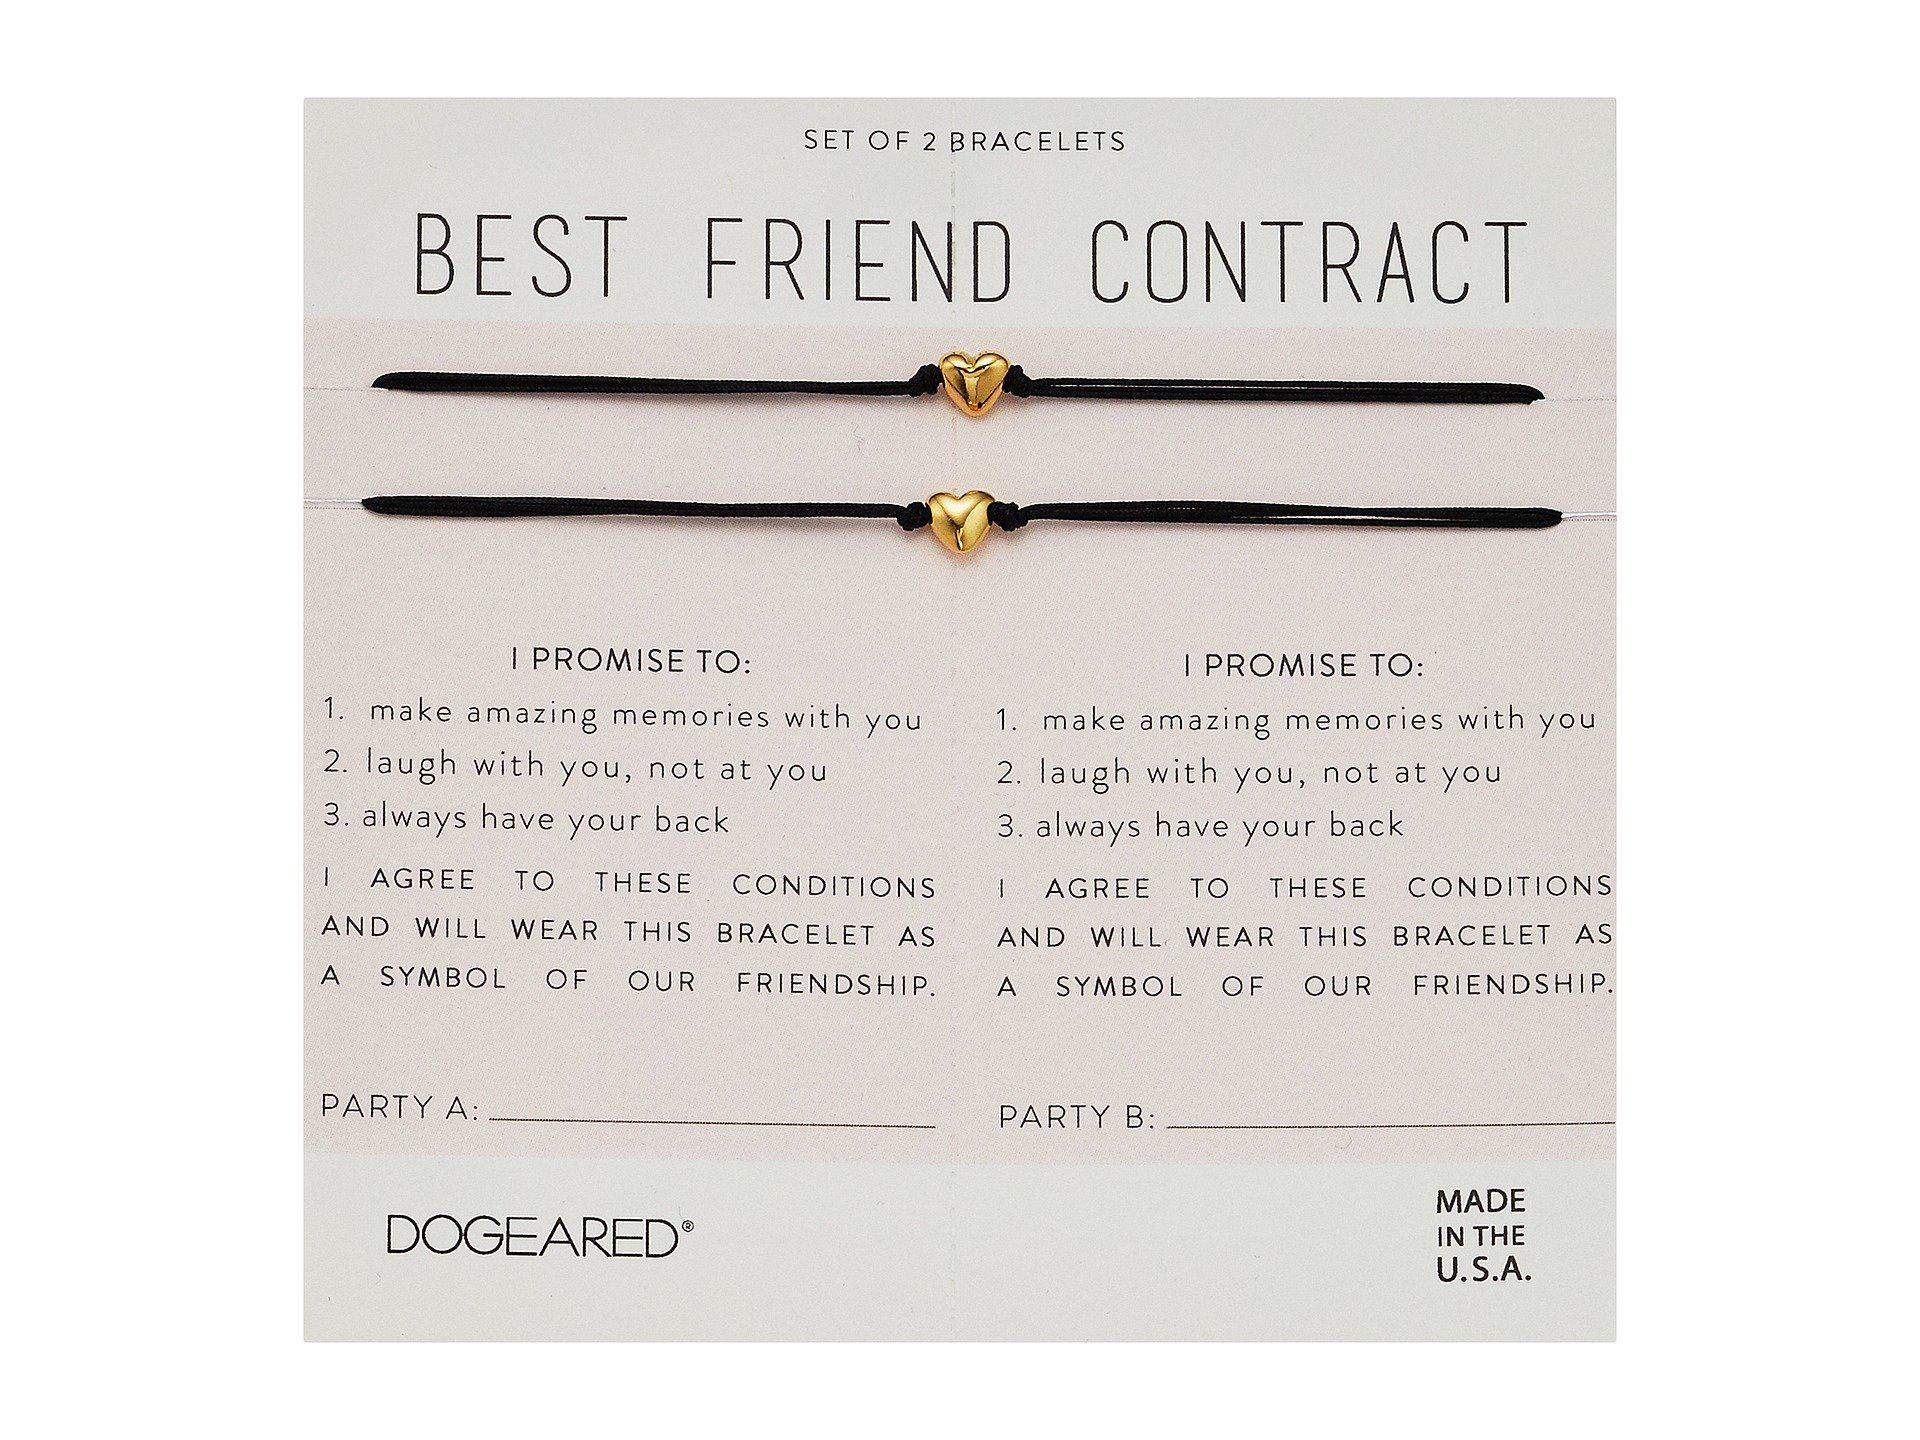 Lyst dogeared best friend contract set of 2 heart bracelets in gallery altavistaventures Image collections